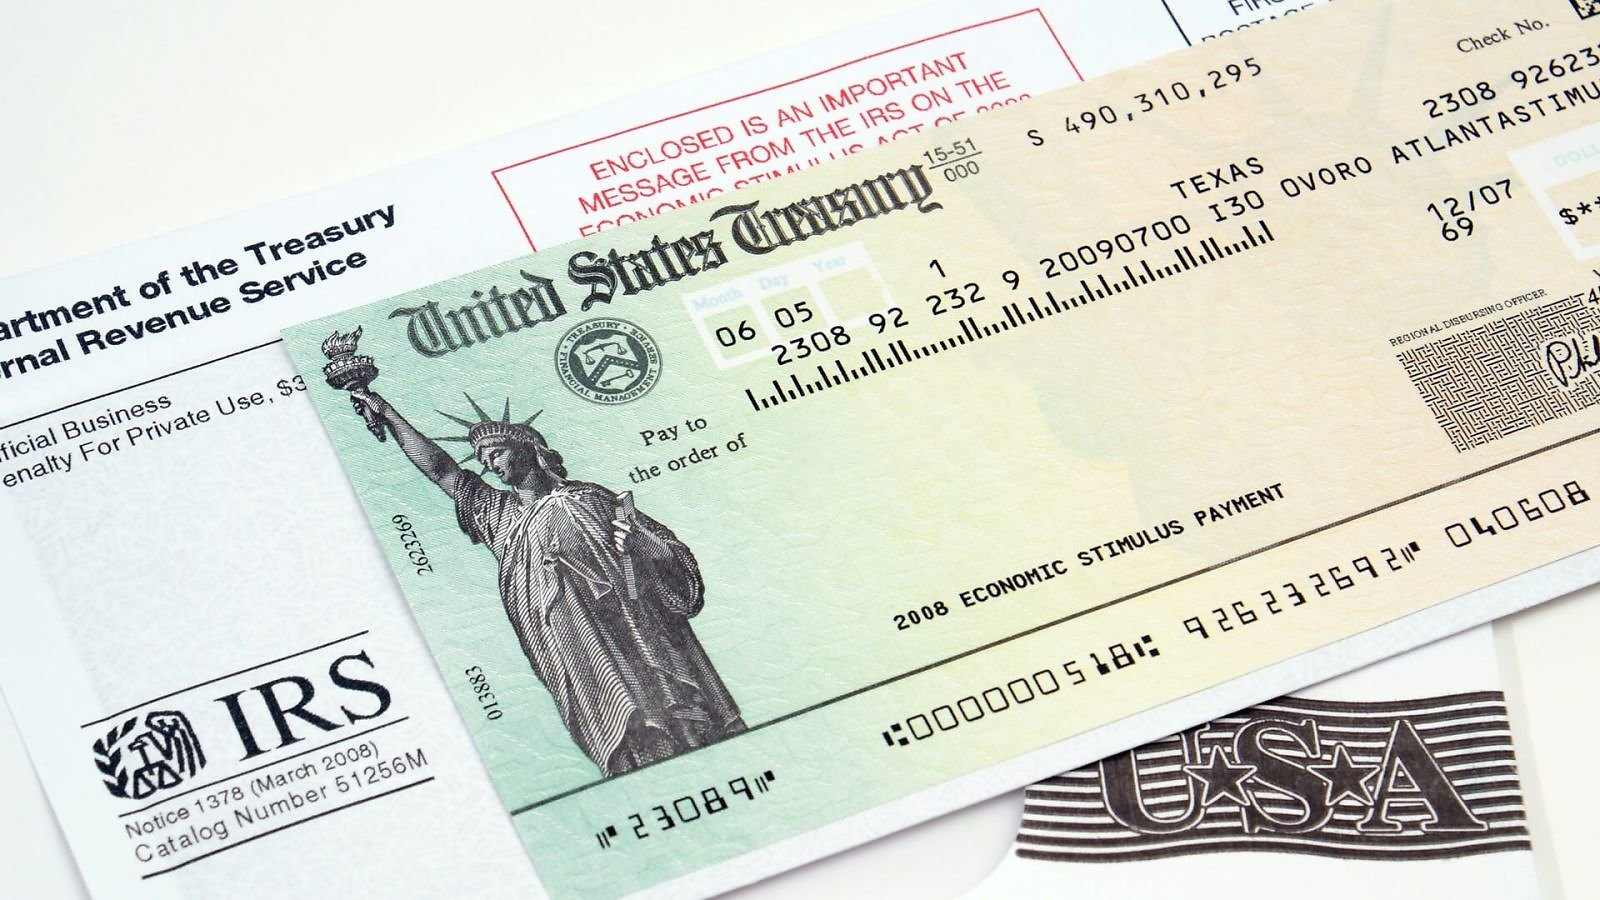 Here's The Average IRS Tax Refund Amount By State